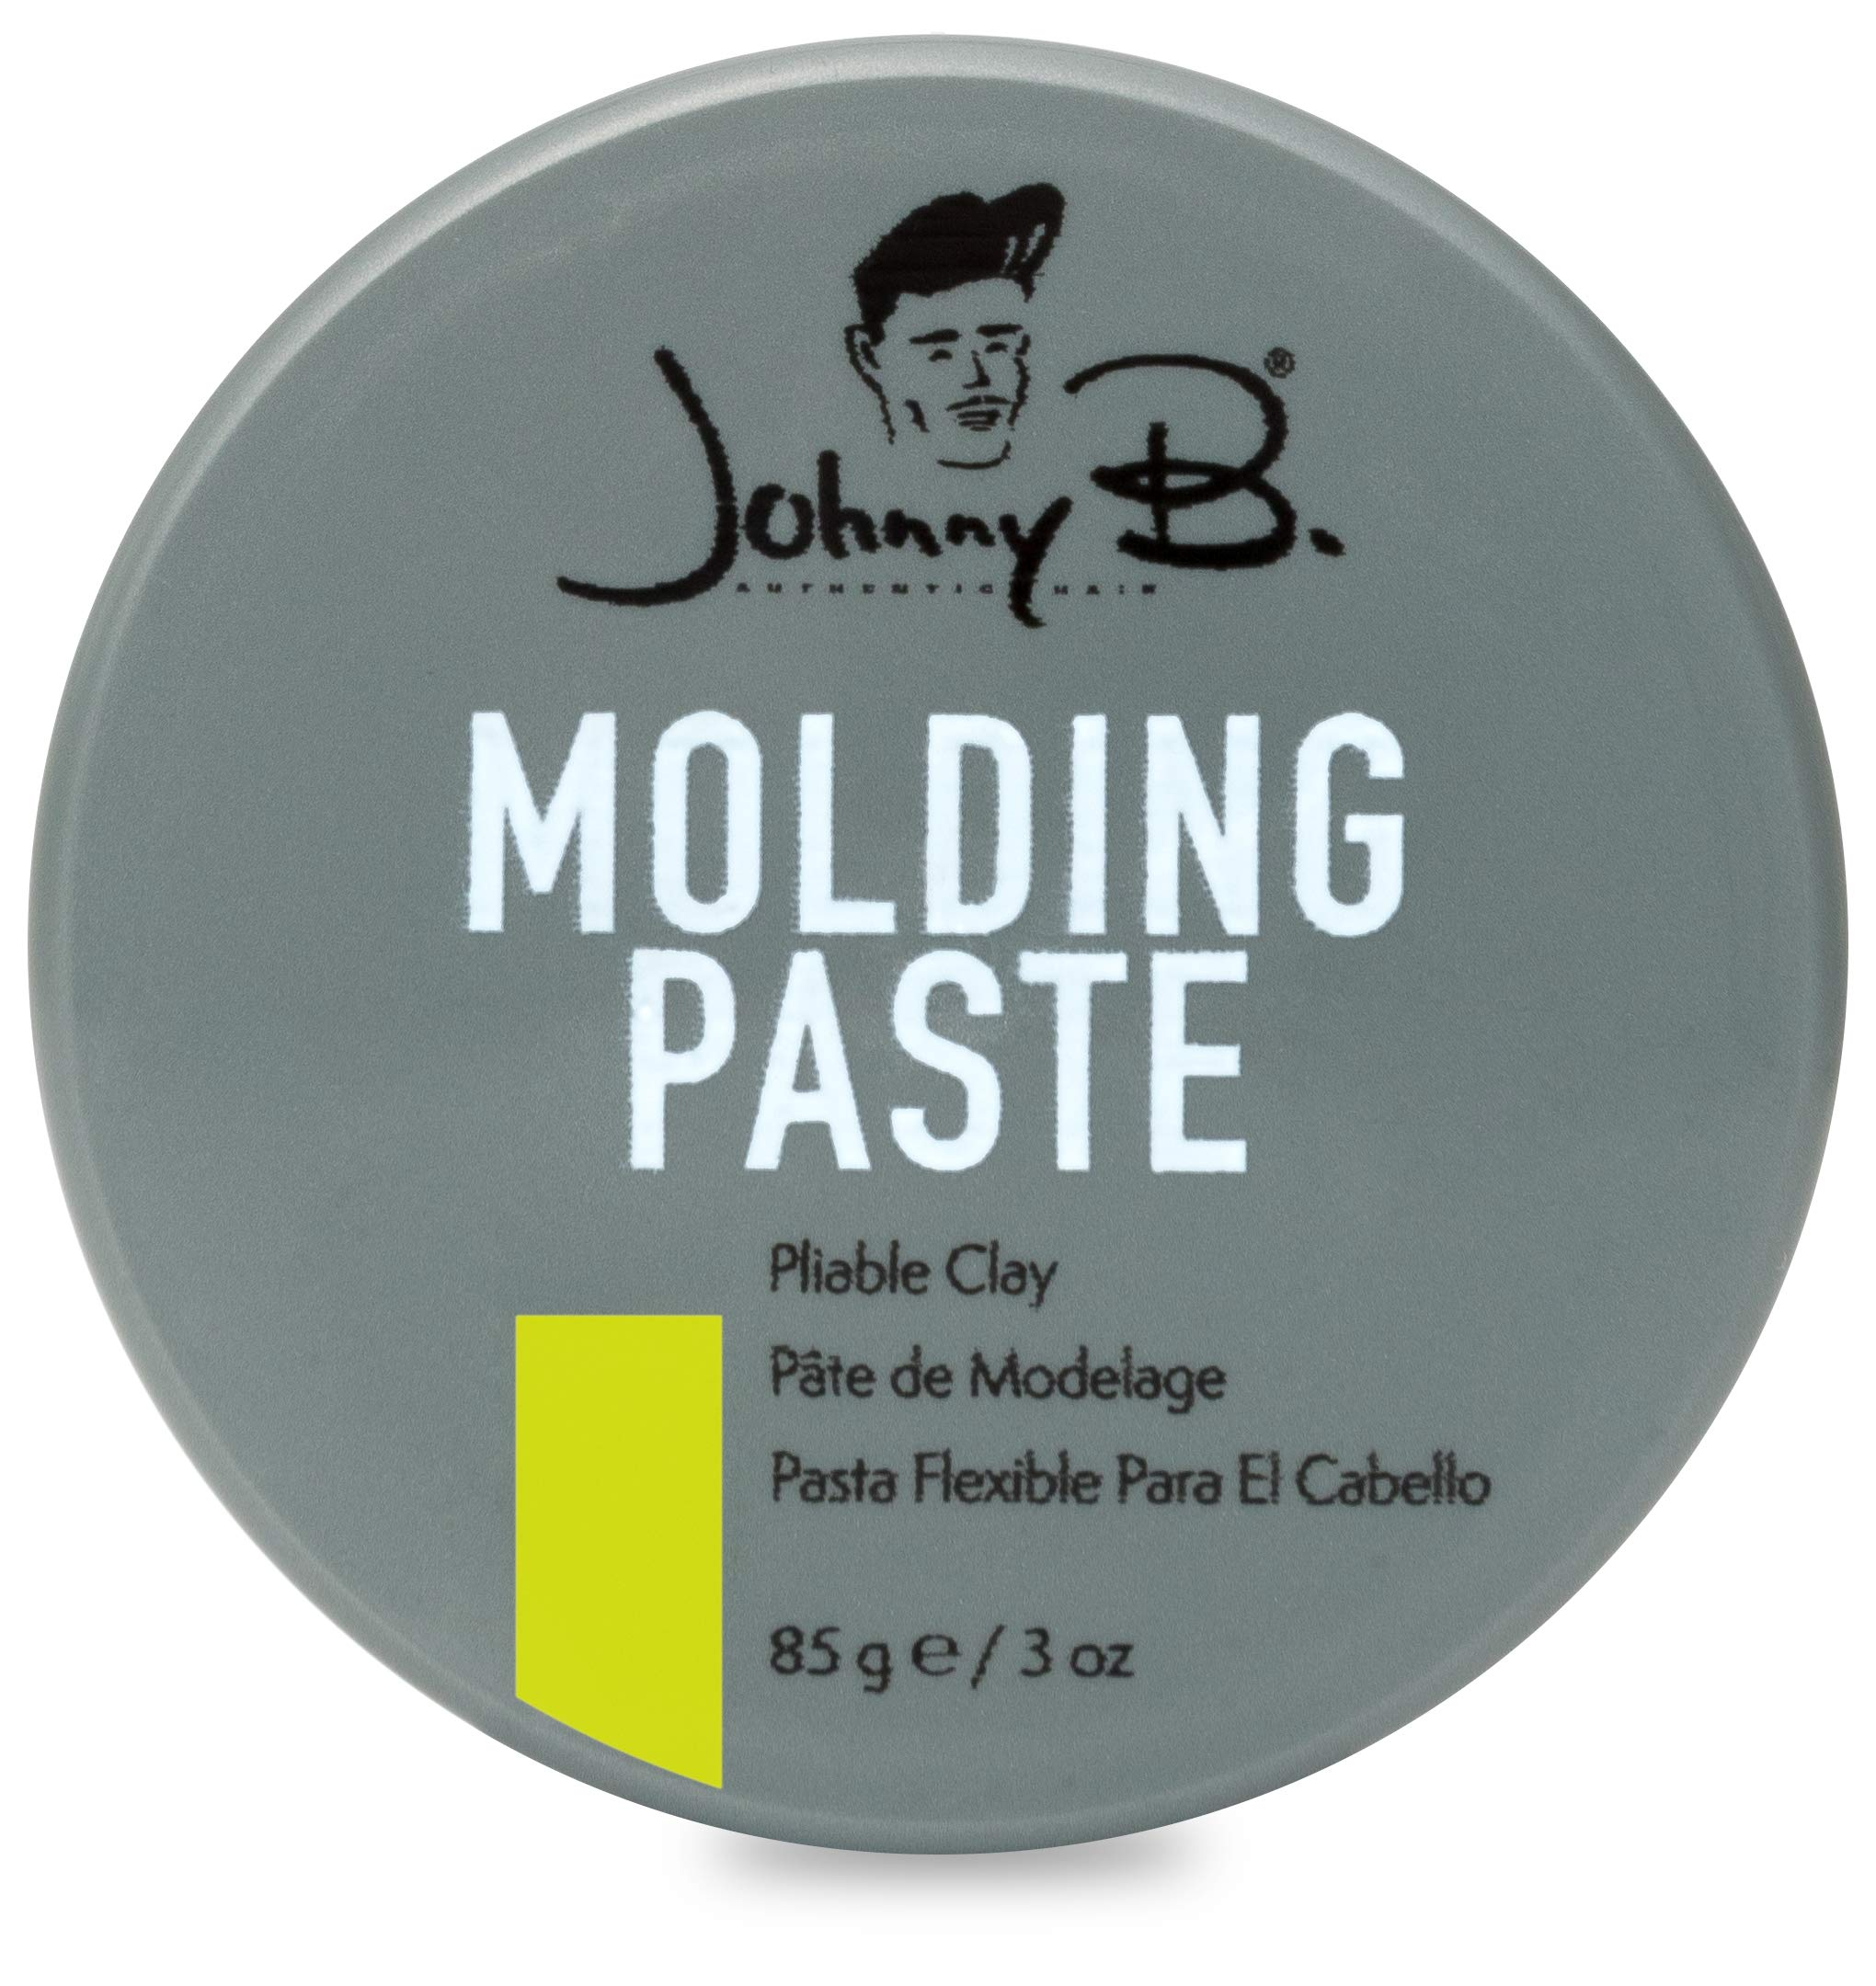 Johnny B Pliable Clay Molding Paste (3 oz) by JOHNNY B.